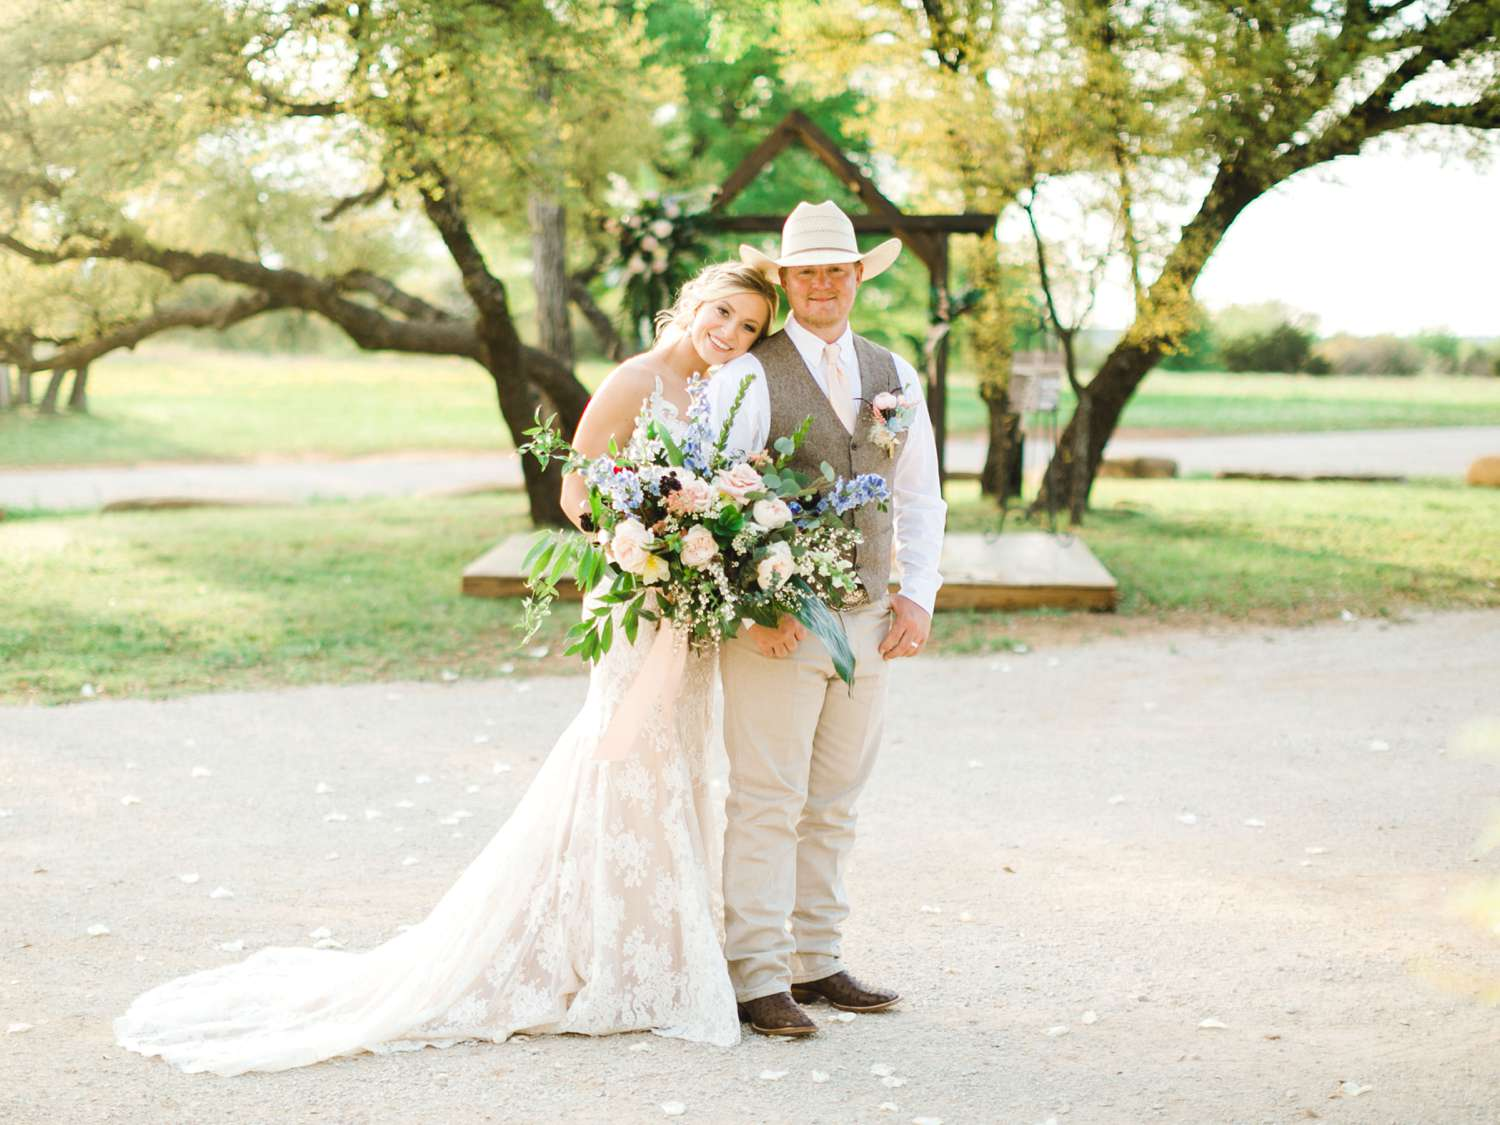 SARAH+TREVOR+BADGETT+SPARROW+CREEK+GRAHAM+TEXAS+ALLEEJ+WEDDINGS_0100.jpg